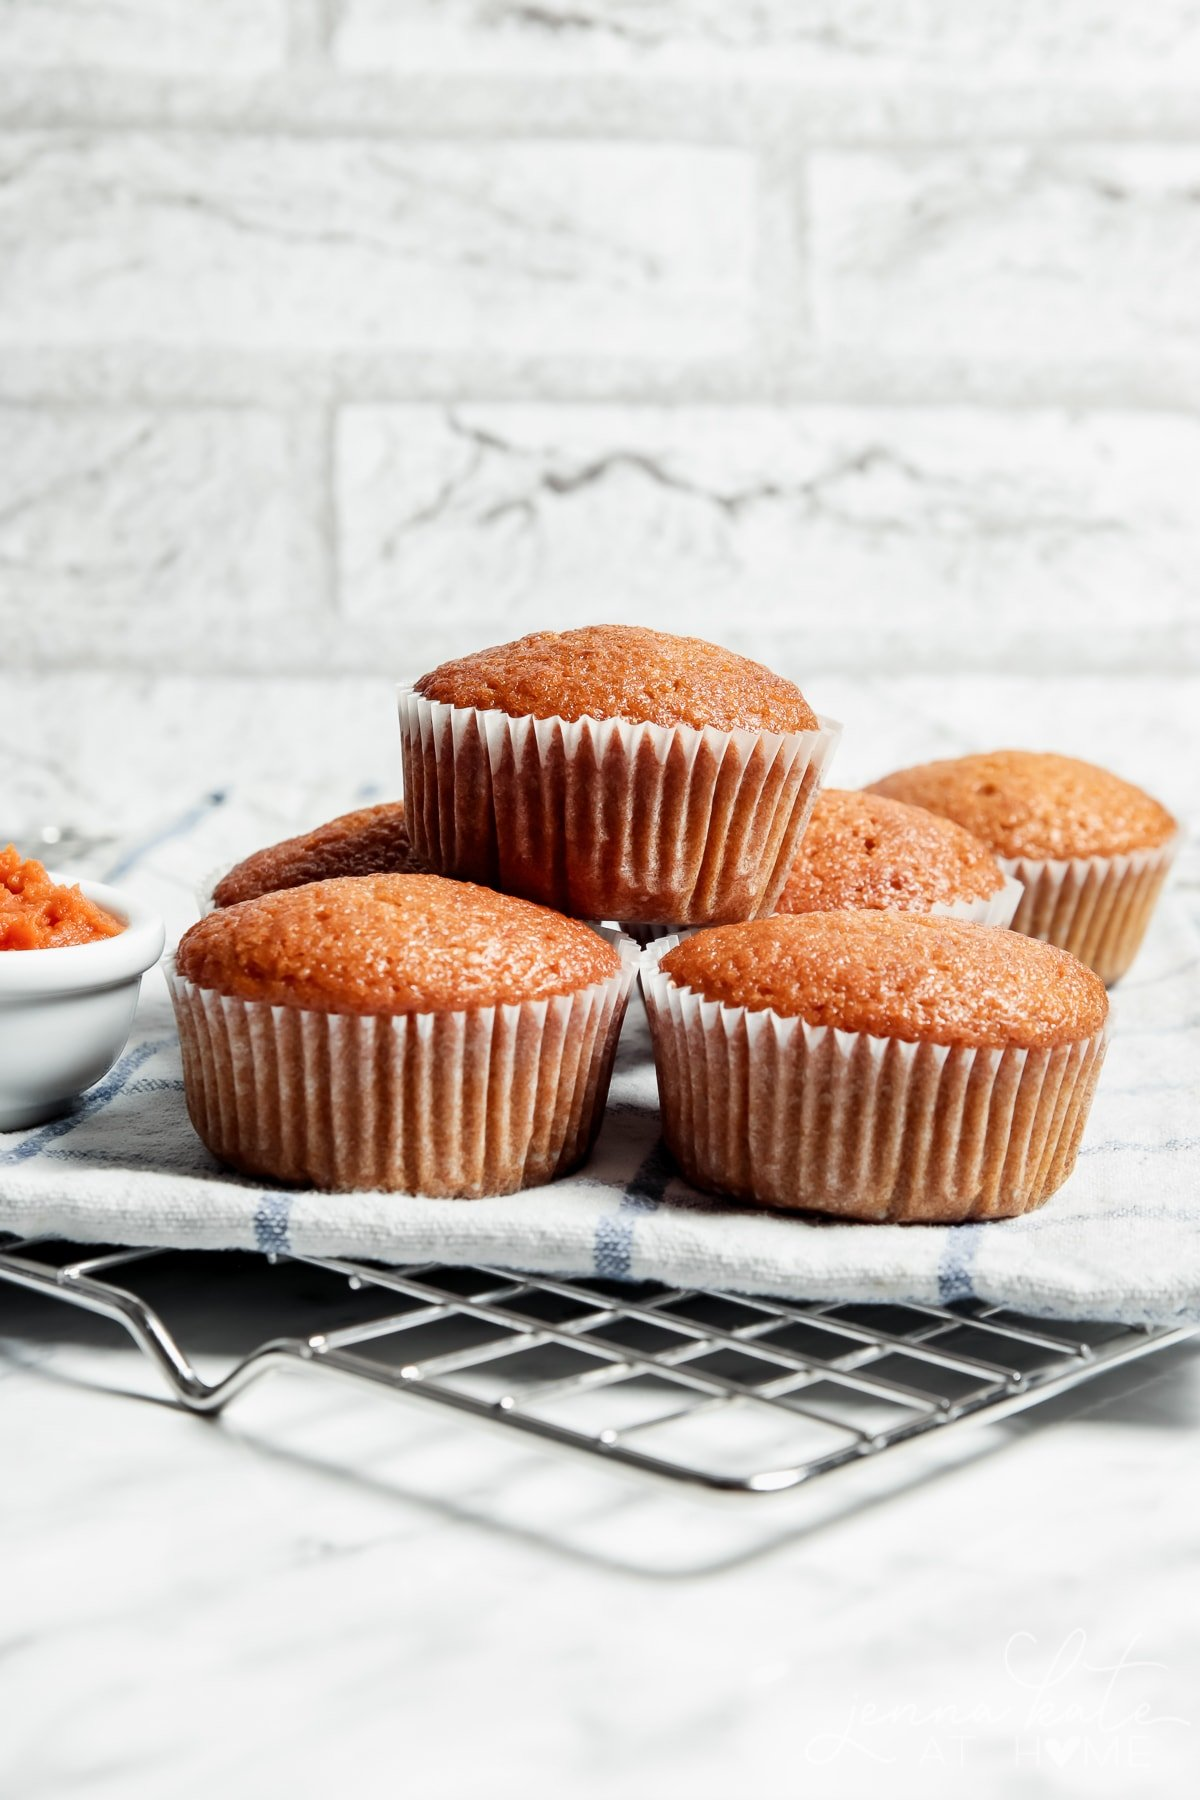 pumkin bread muffins stacked on a plate